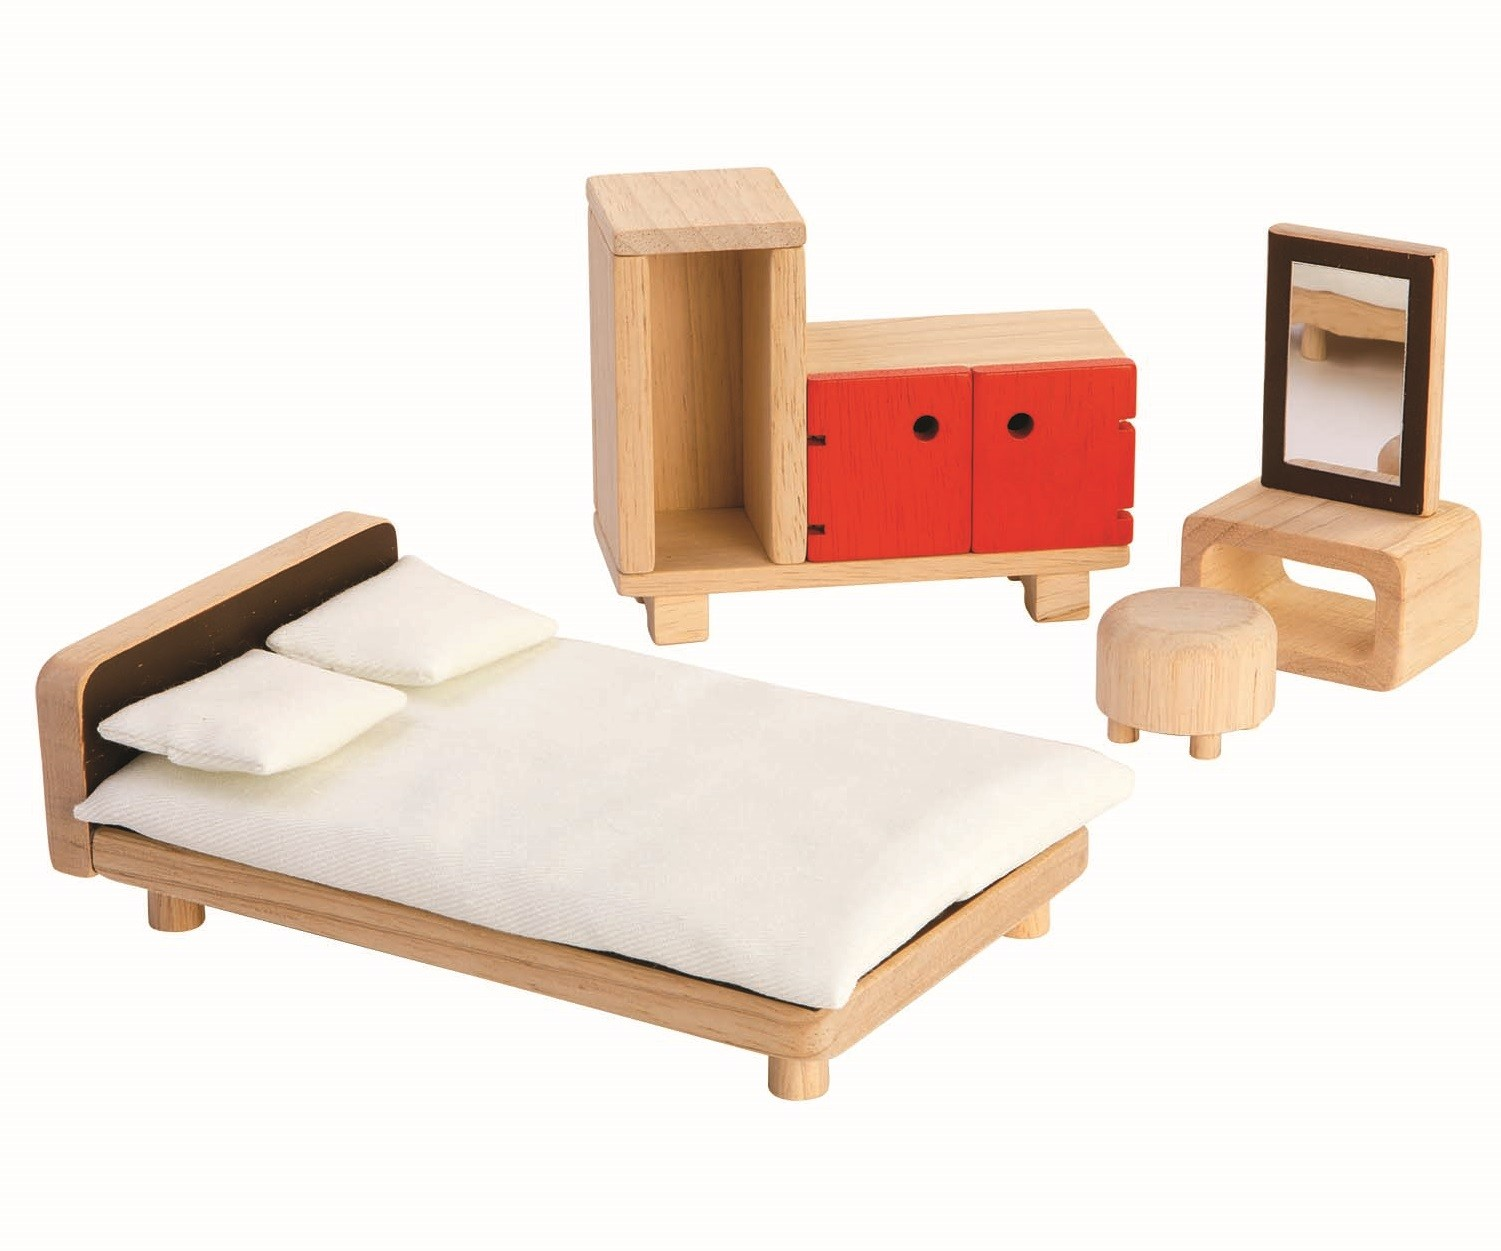 Wooden Toy Plans Catalog : Plan toys parents room